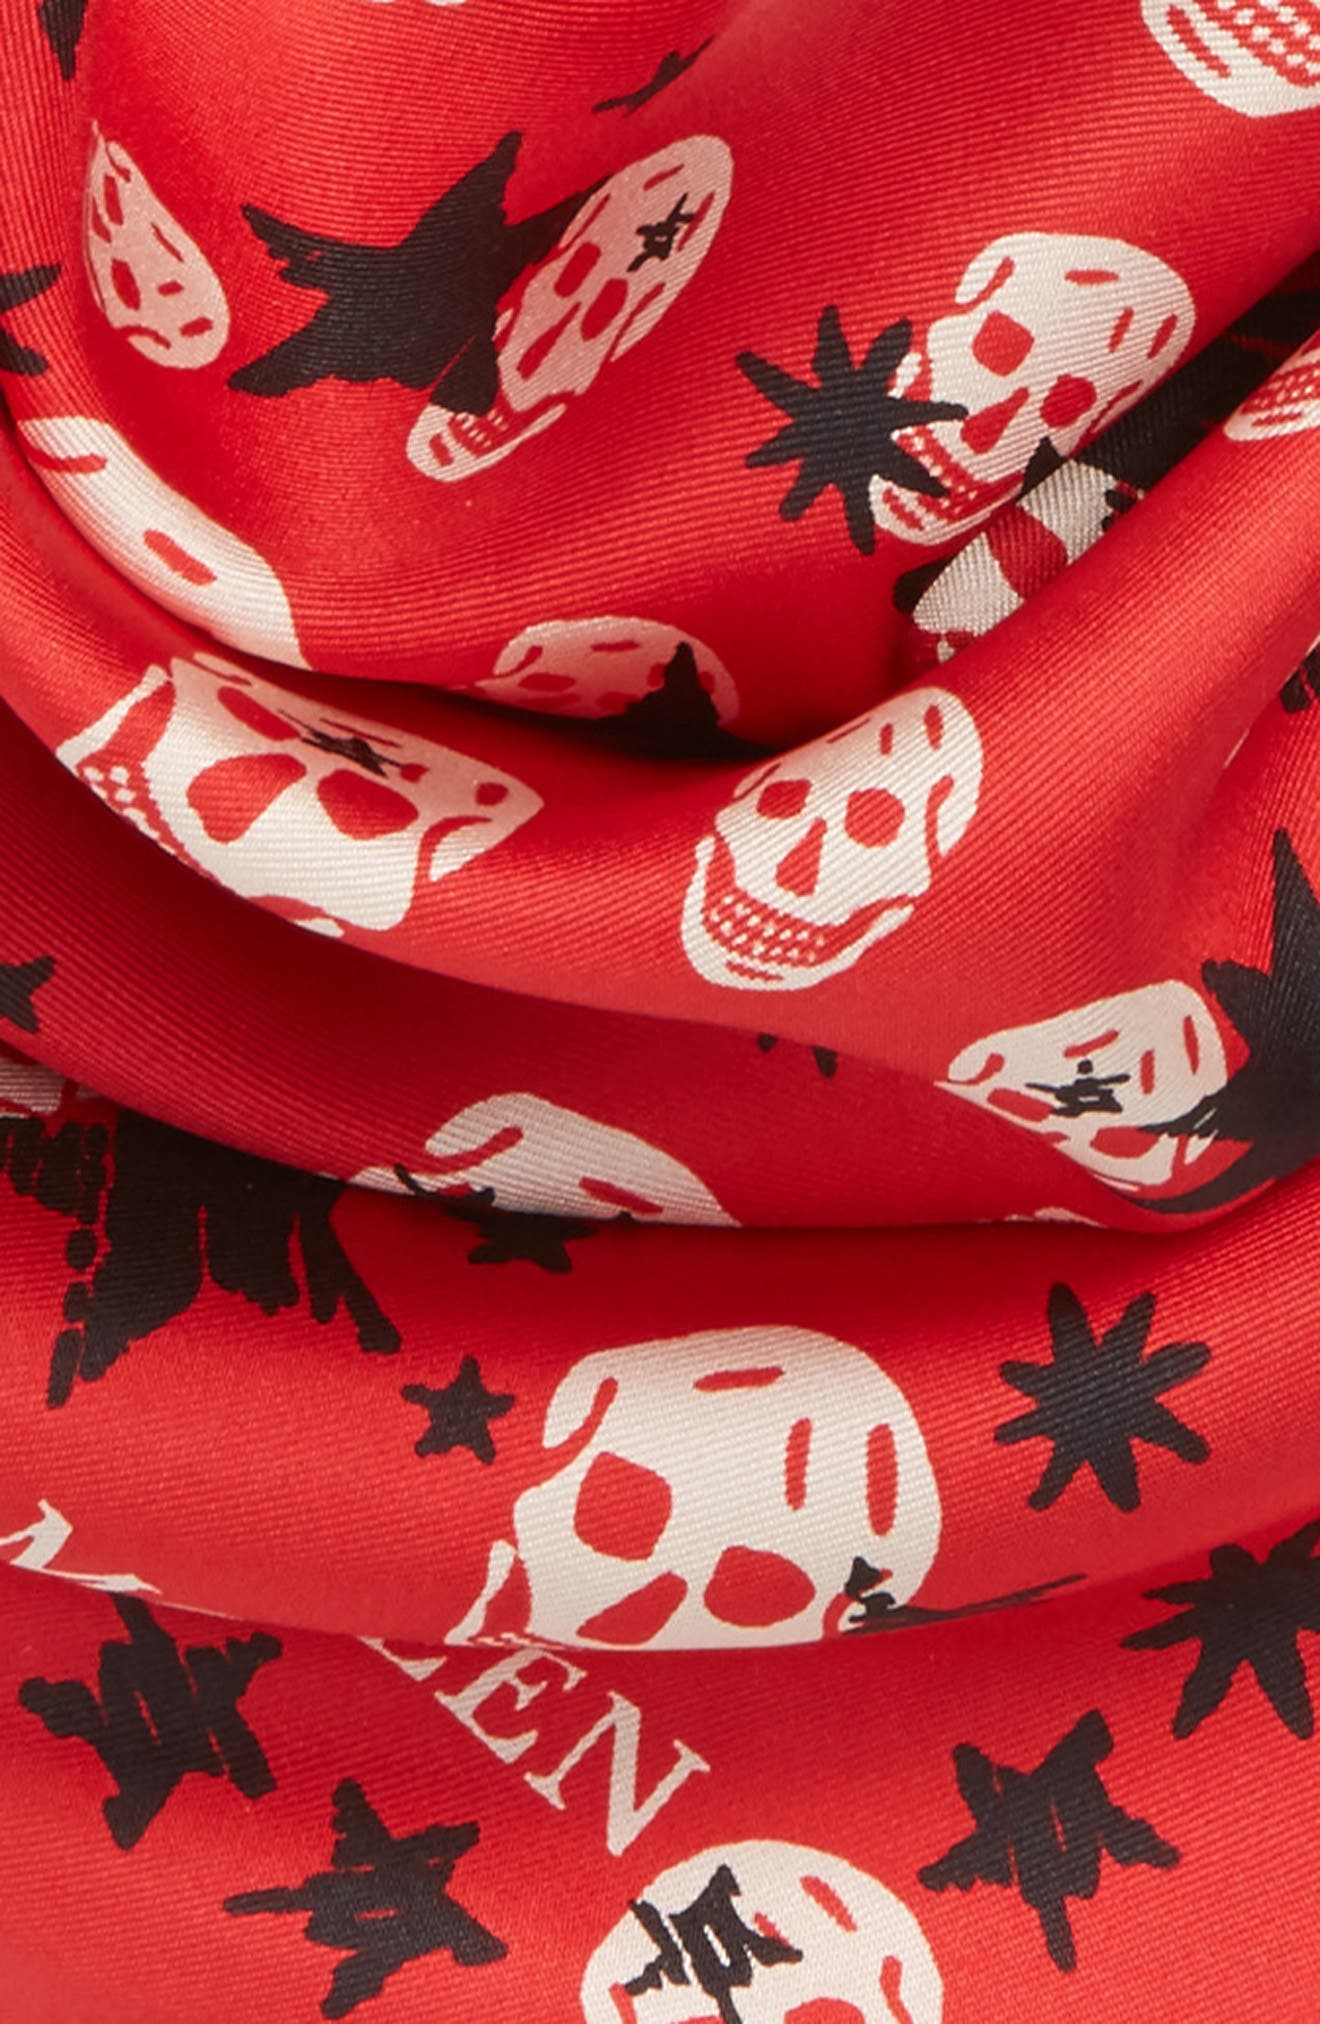 Starlight Skull Silk Bandana,                             Alternate thumbnail 3, color,                             RED/ PINK